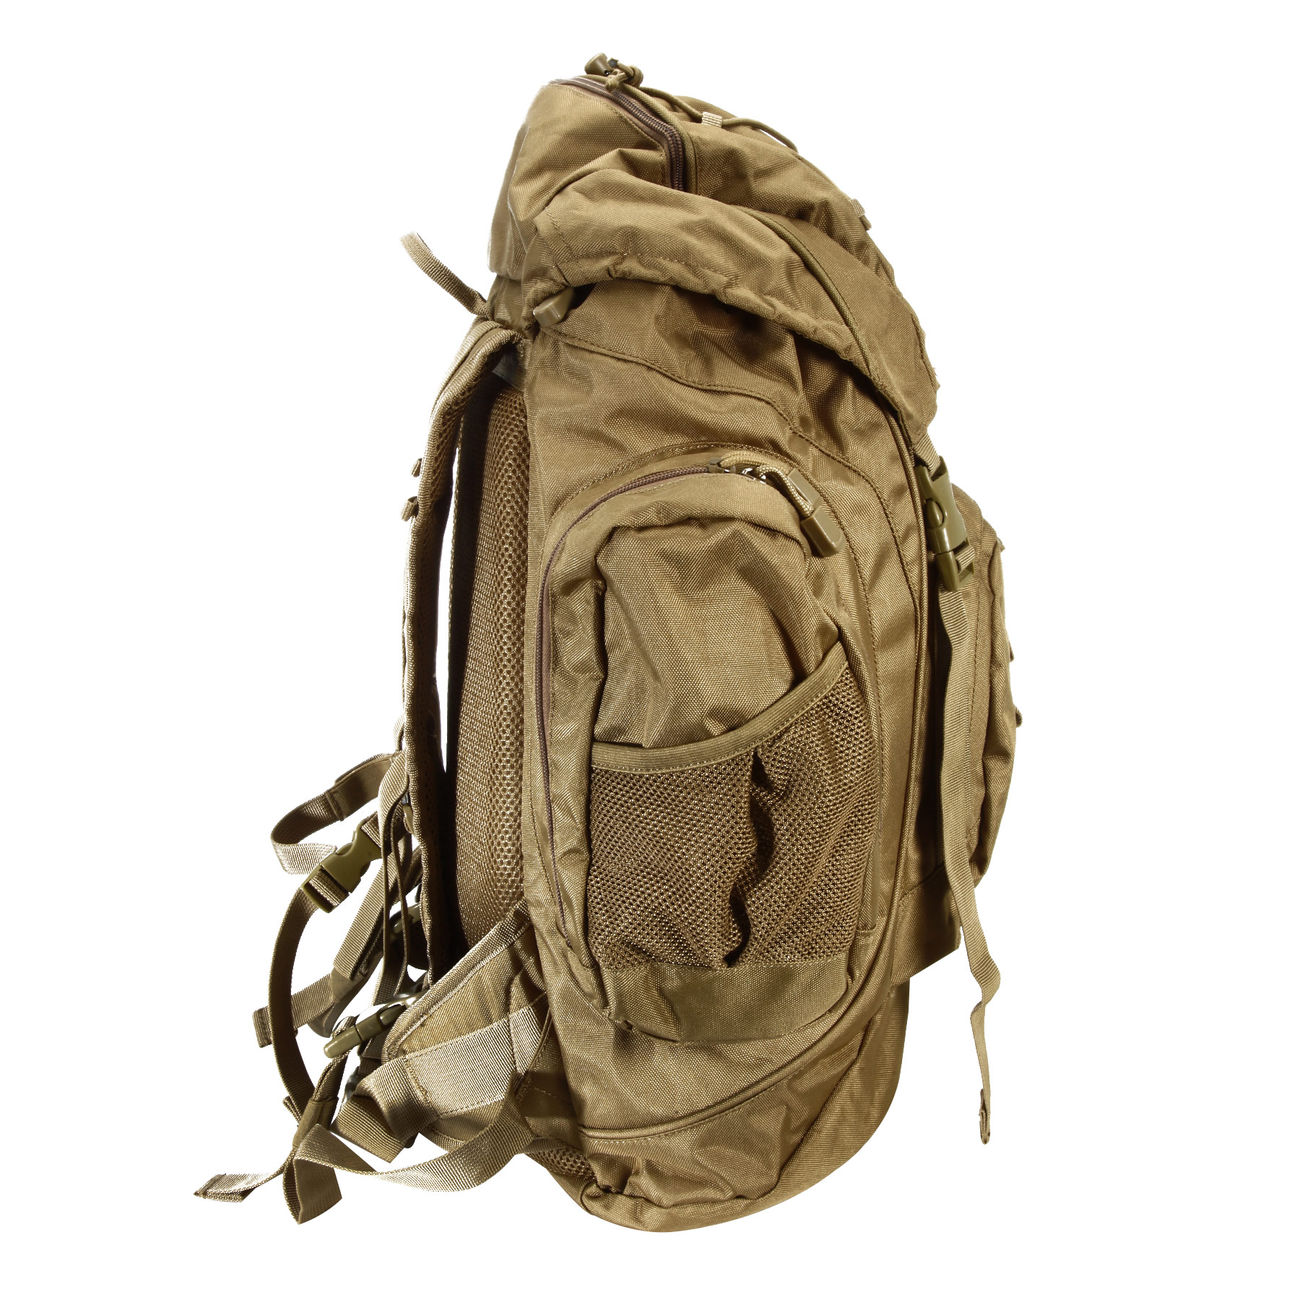 Defcon 5 Tactical Assault Rucksack Hydro 50L coyote tan 3